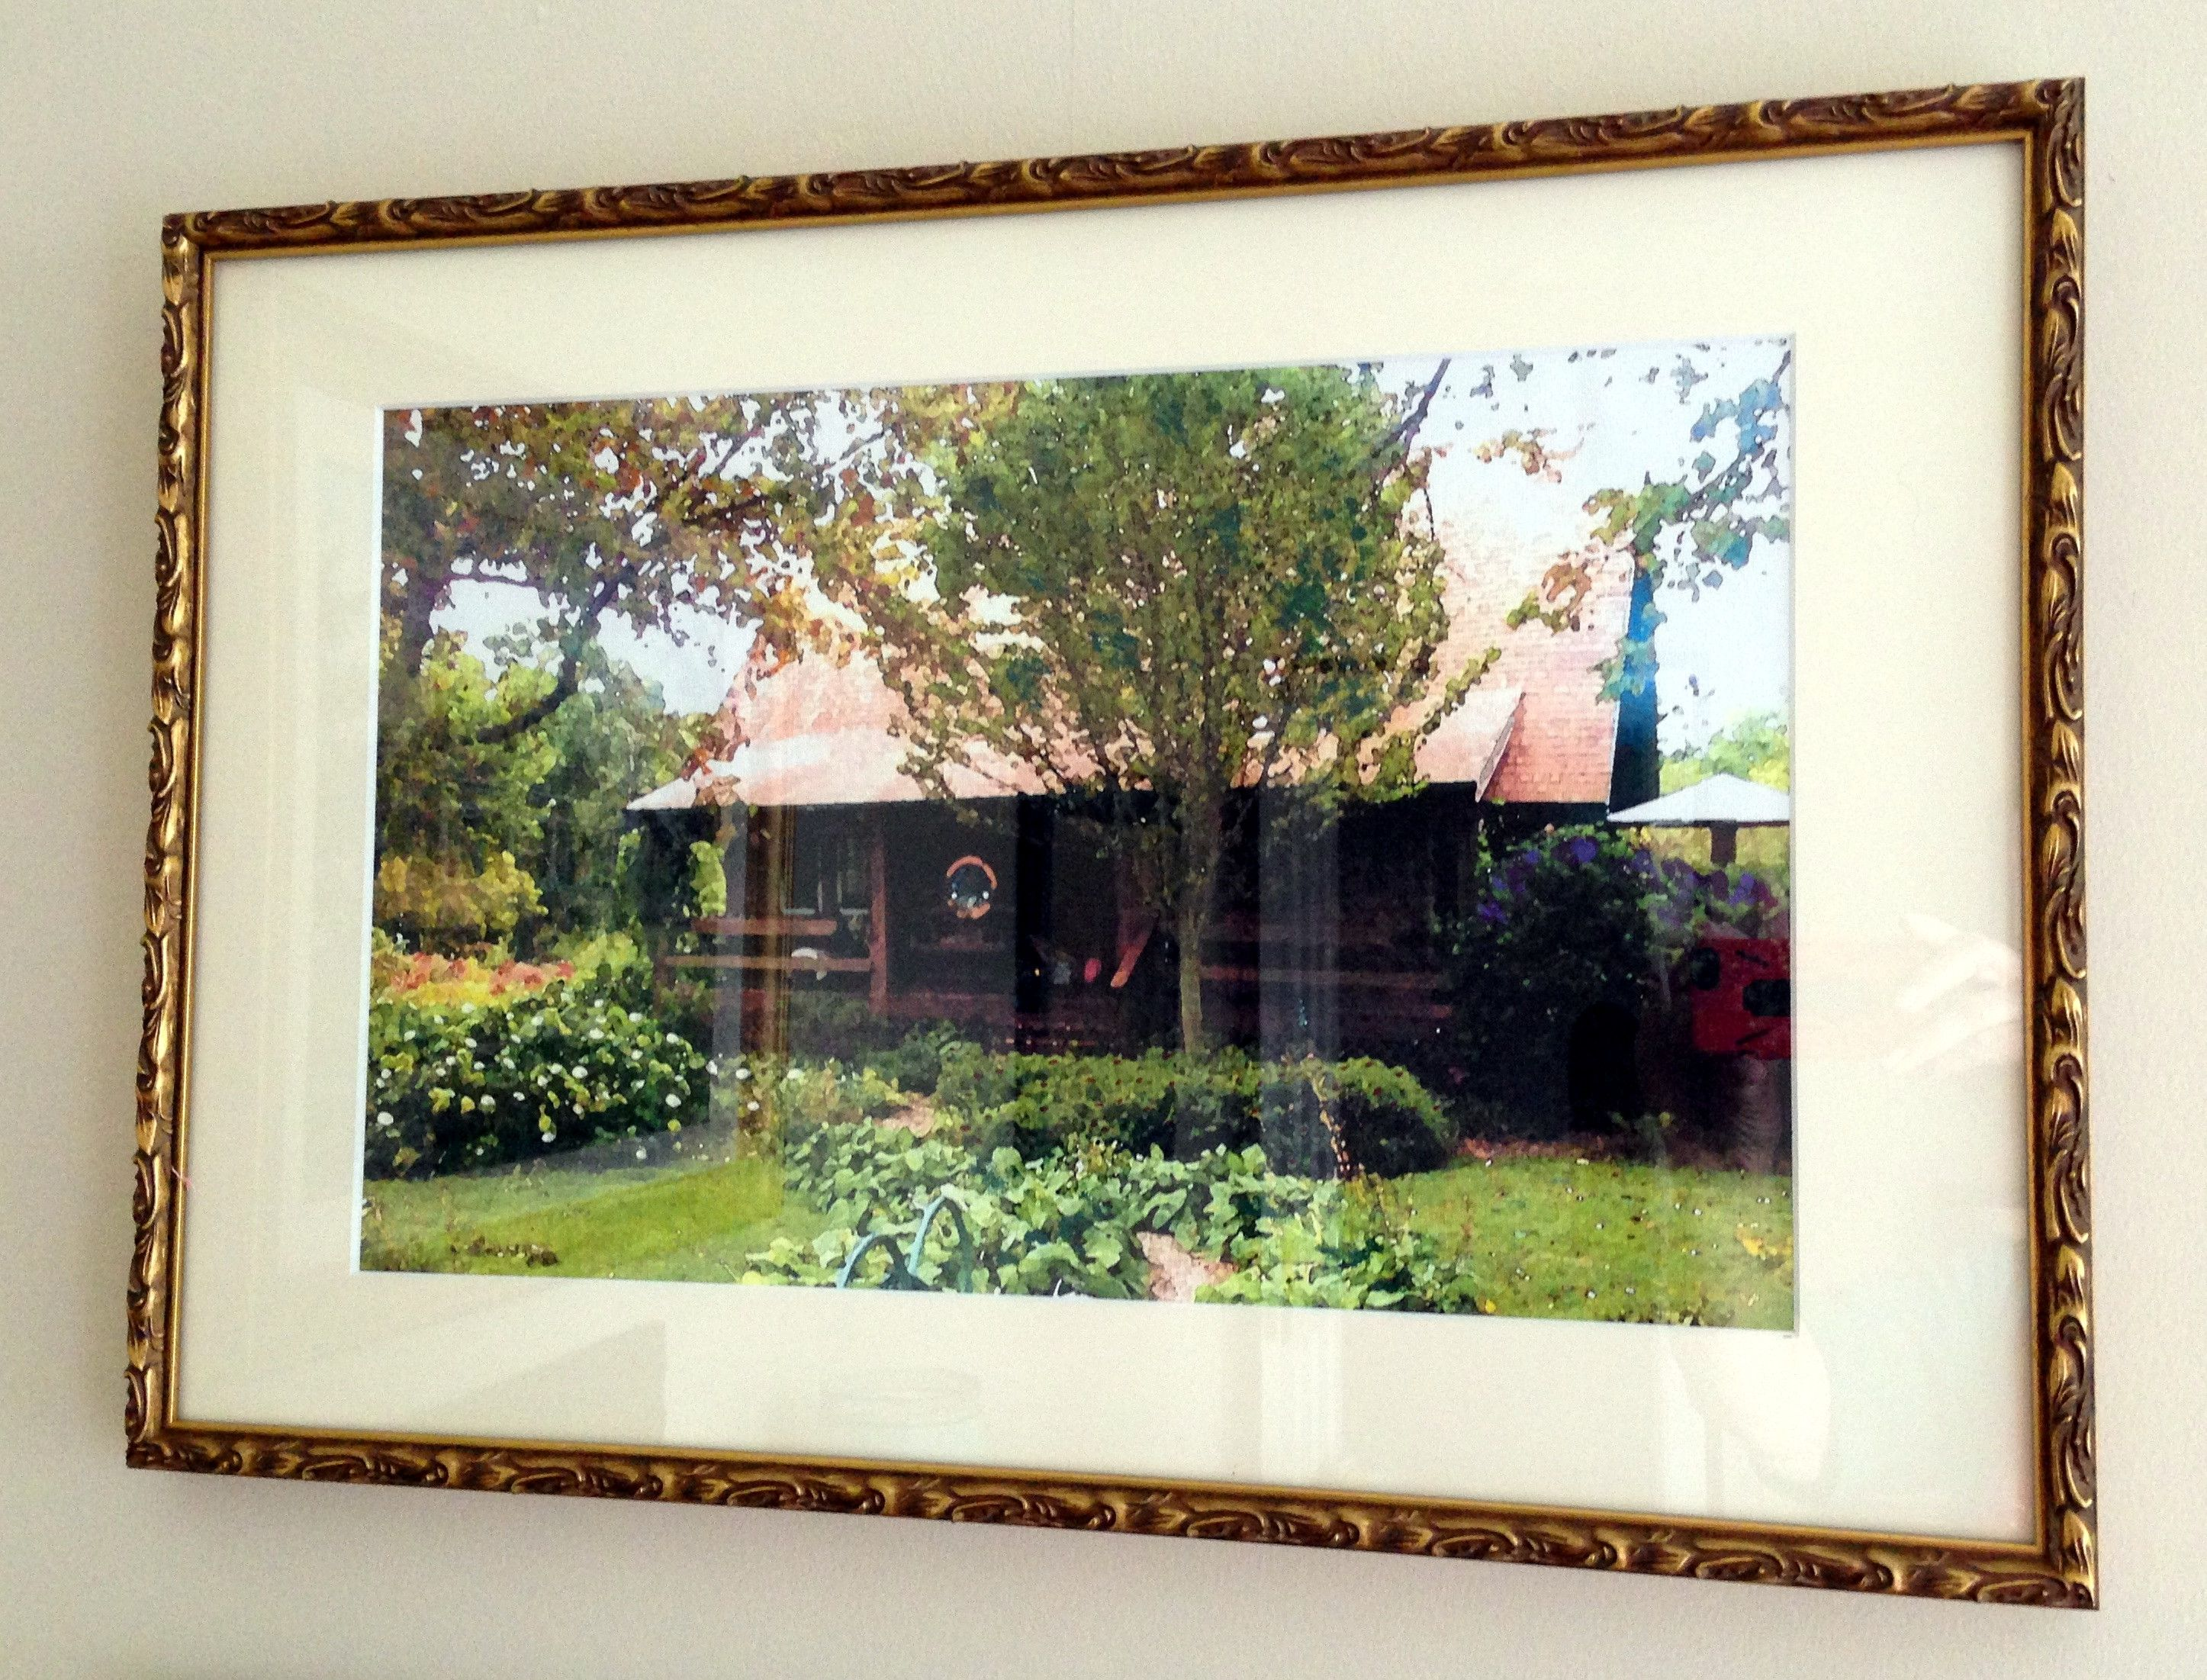 Large Frame Mat Thanks So Much For Sharing This Large Mat In A Golden Frame